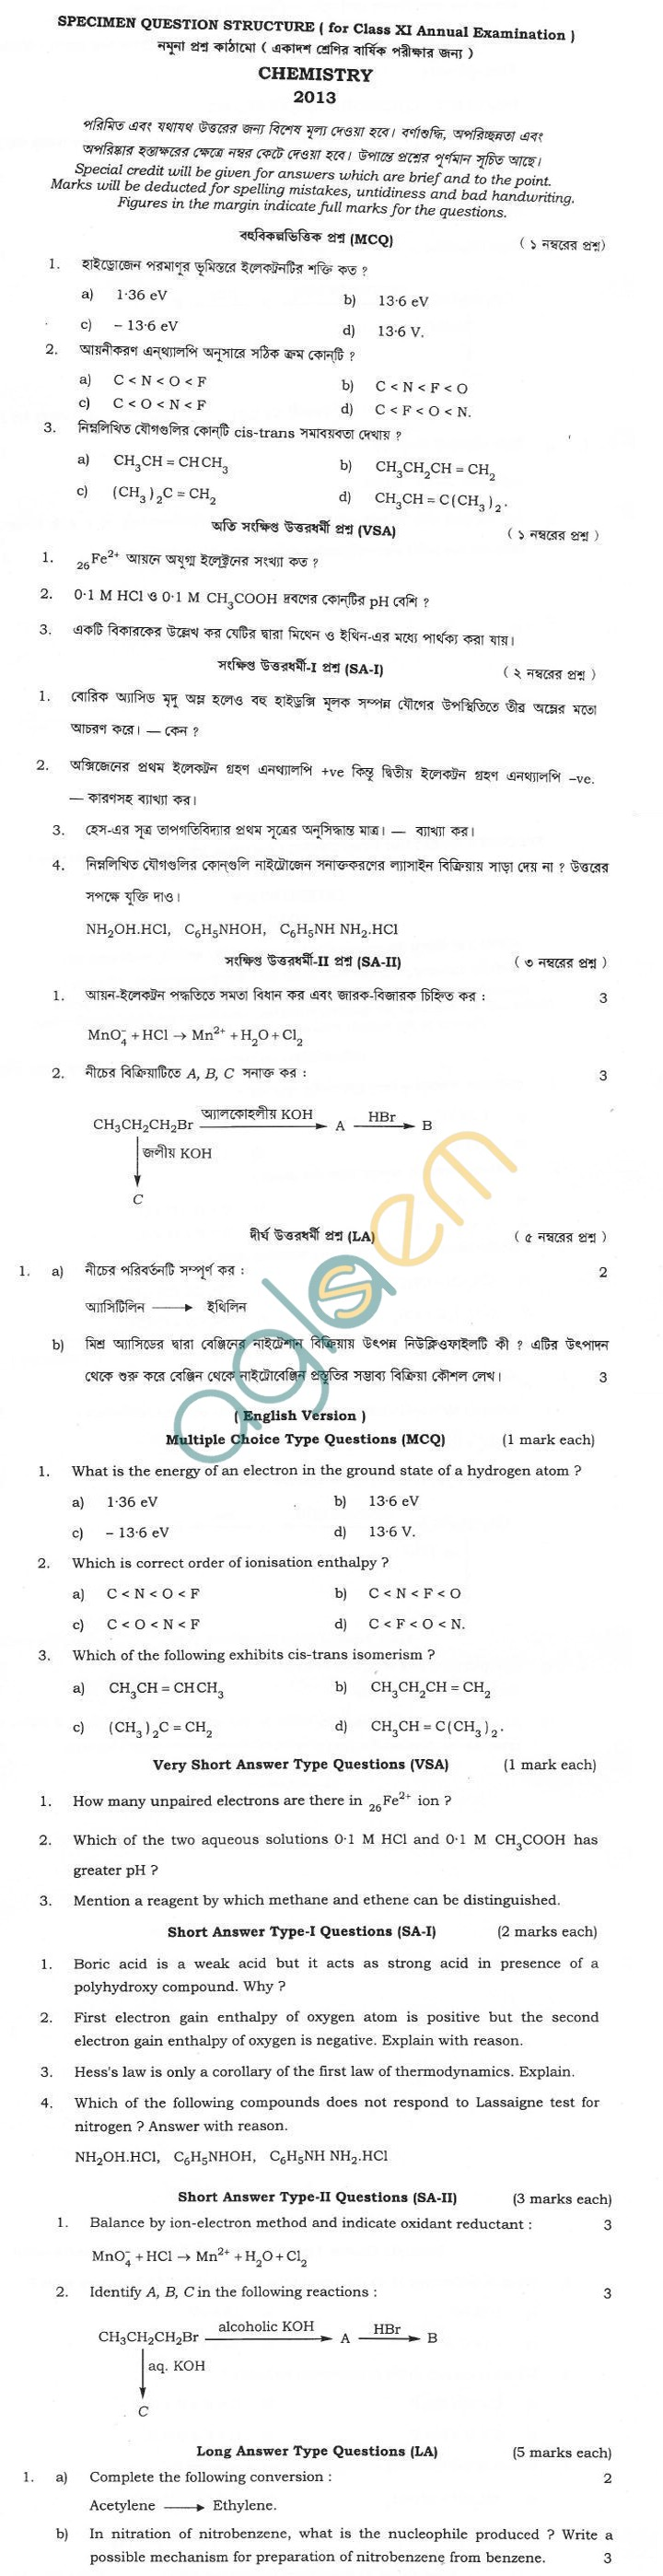 West Bengal Board Sample Question Paper for Class 11 - Chemistry